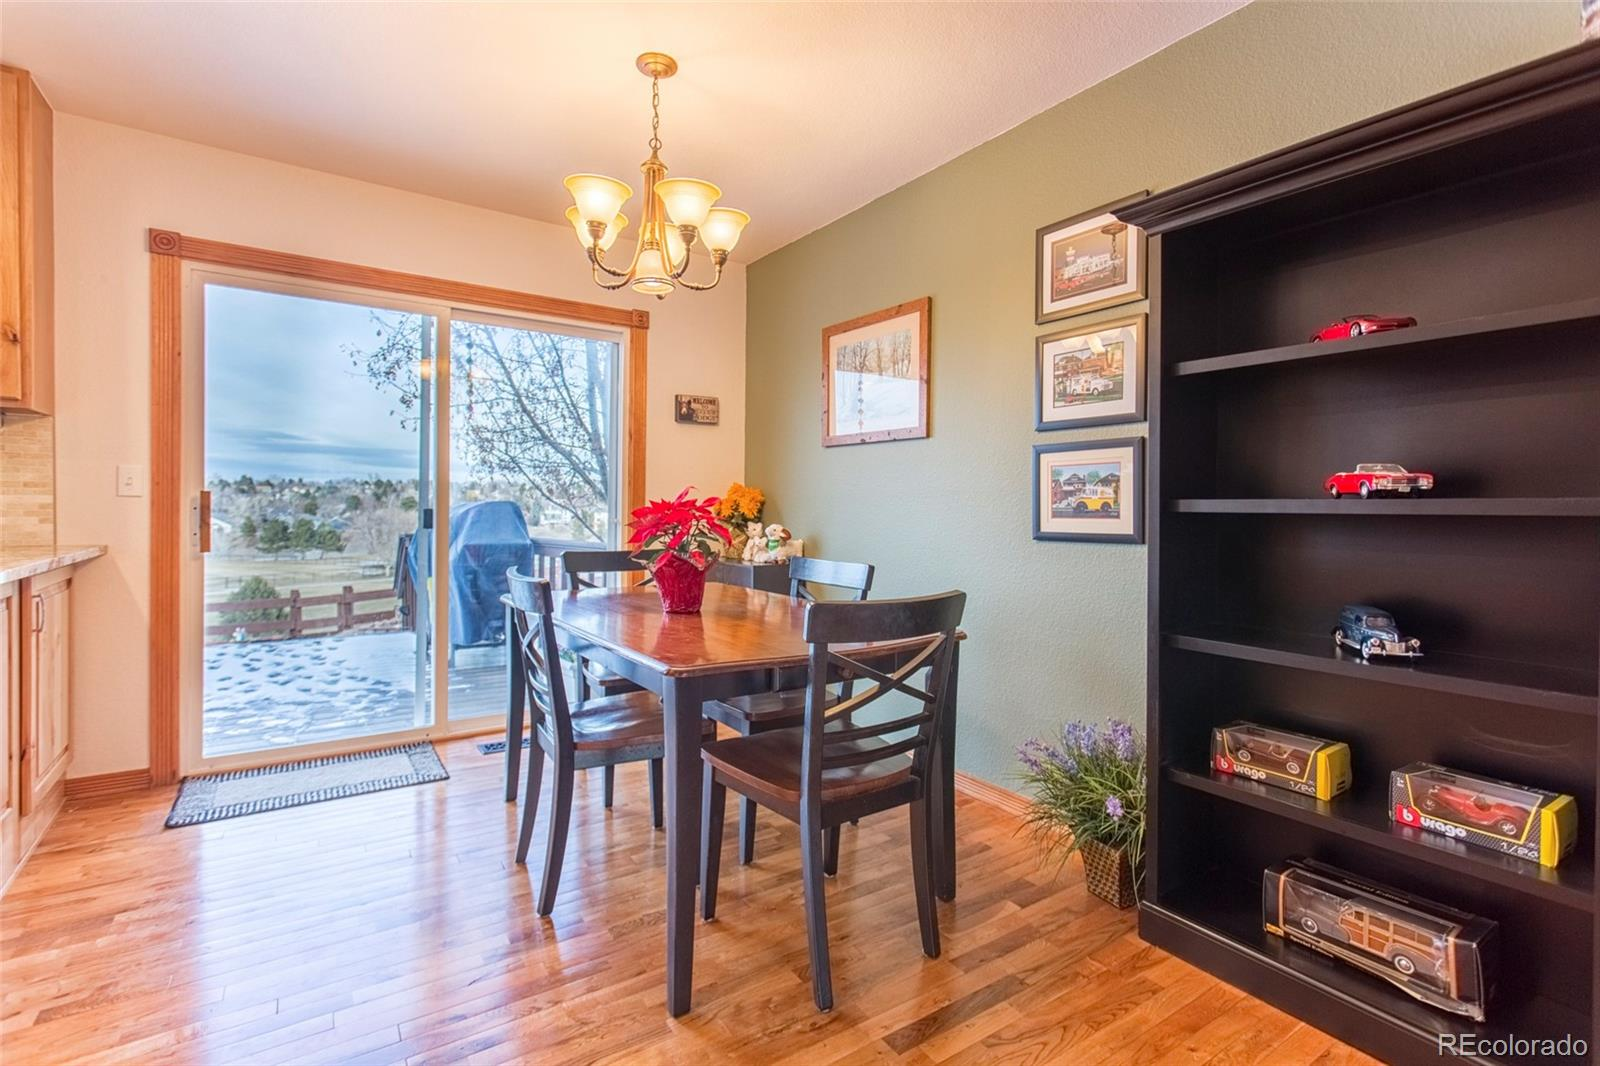 MLS# 8627962 - 20 - 431 Snowy Owl Place, Highlands Ranch, CO 80126